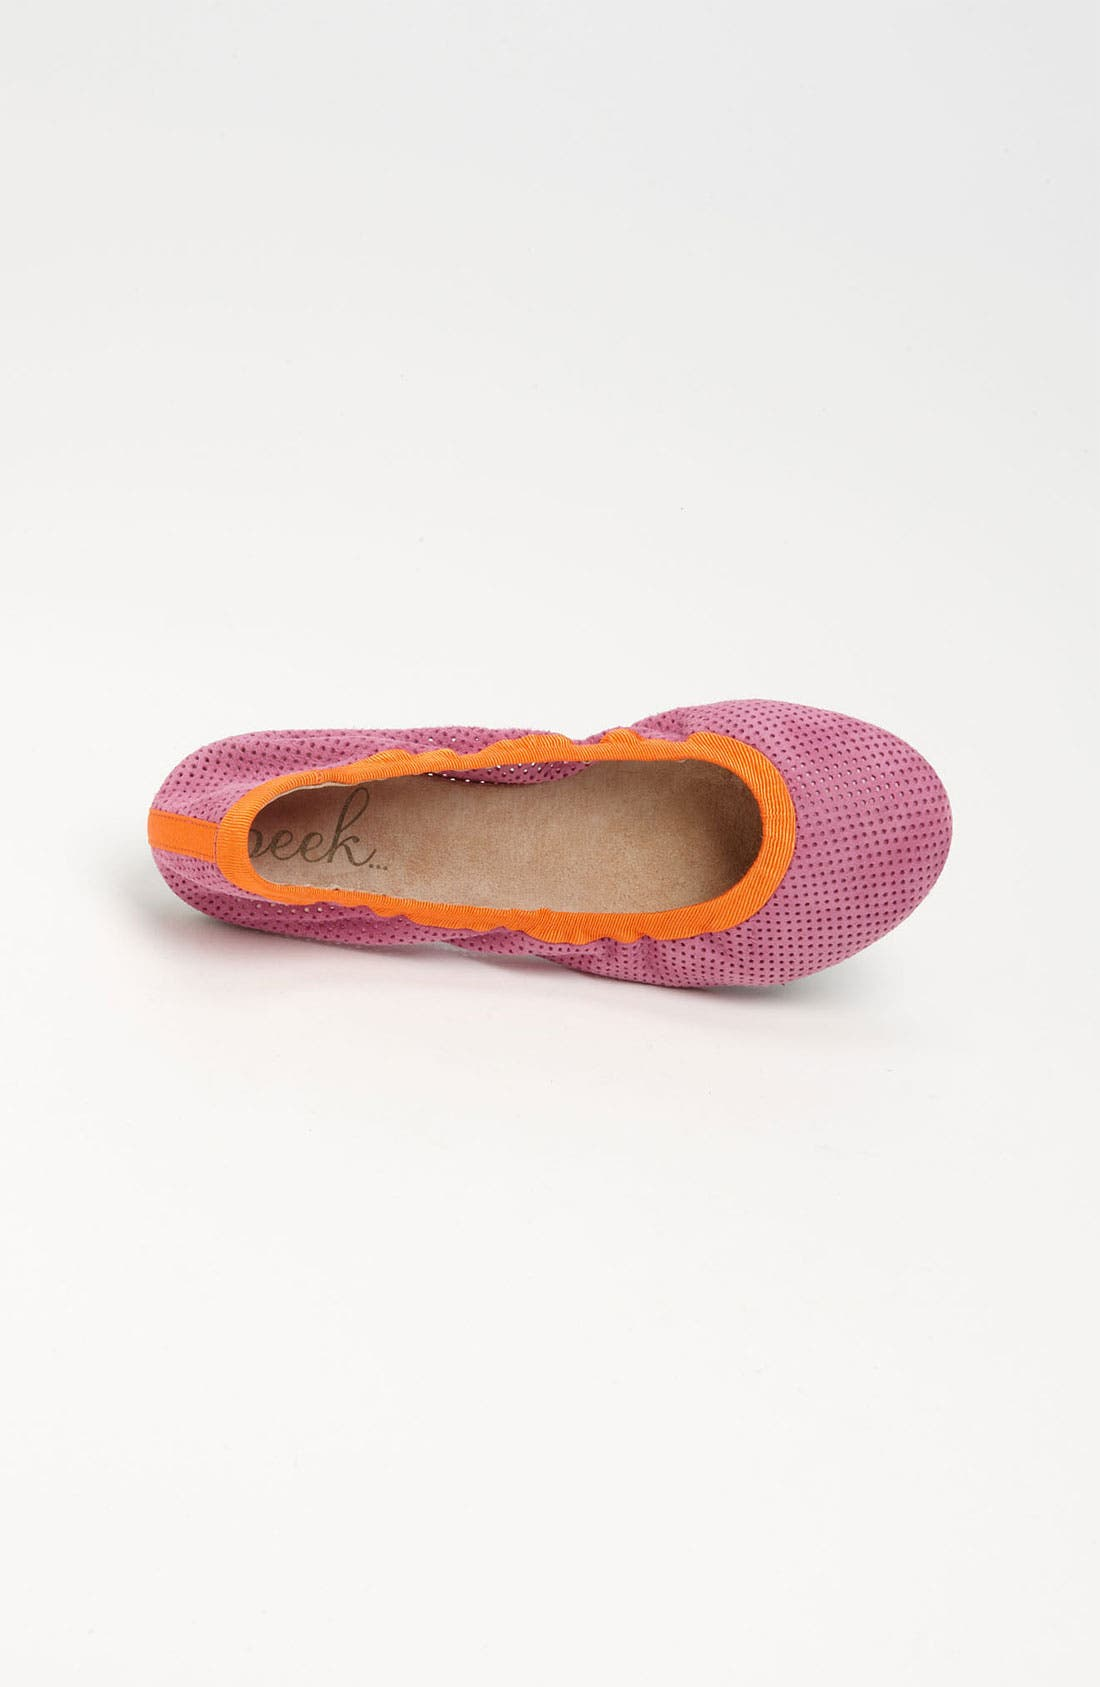 Alternate Image 3  - Peek 'Peony' Flat (Toddler, Little Kid & Big Kid)